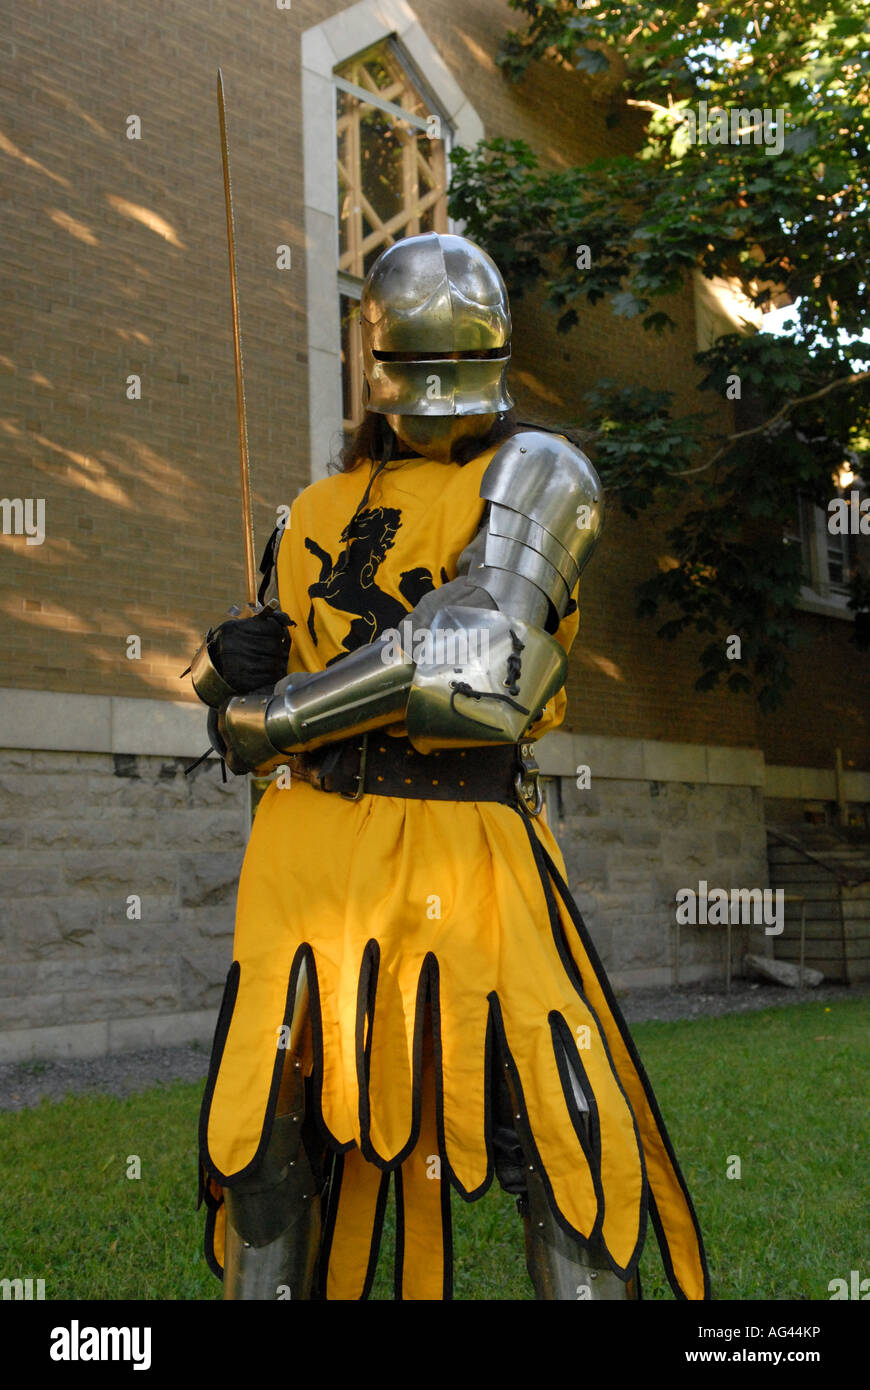 Medieval knight holding a sword - Stock Image